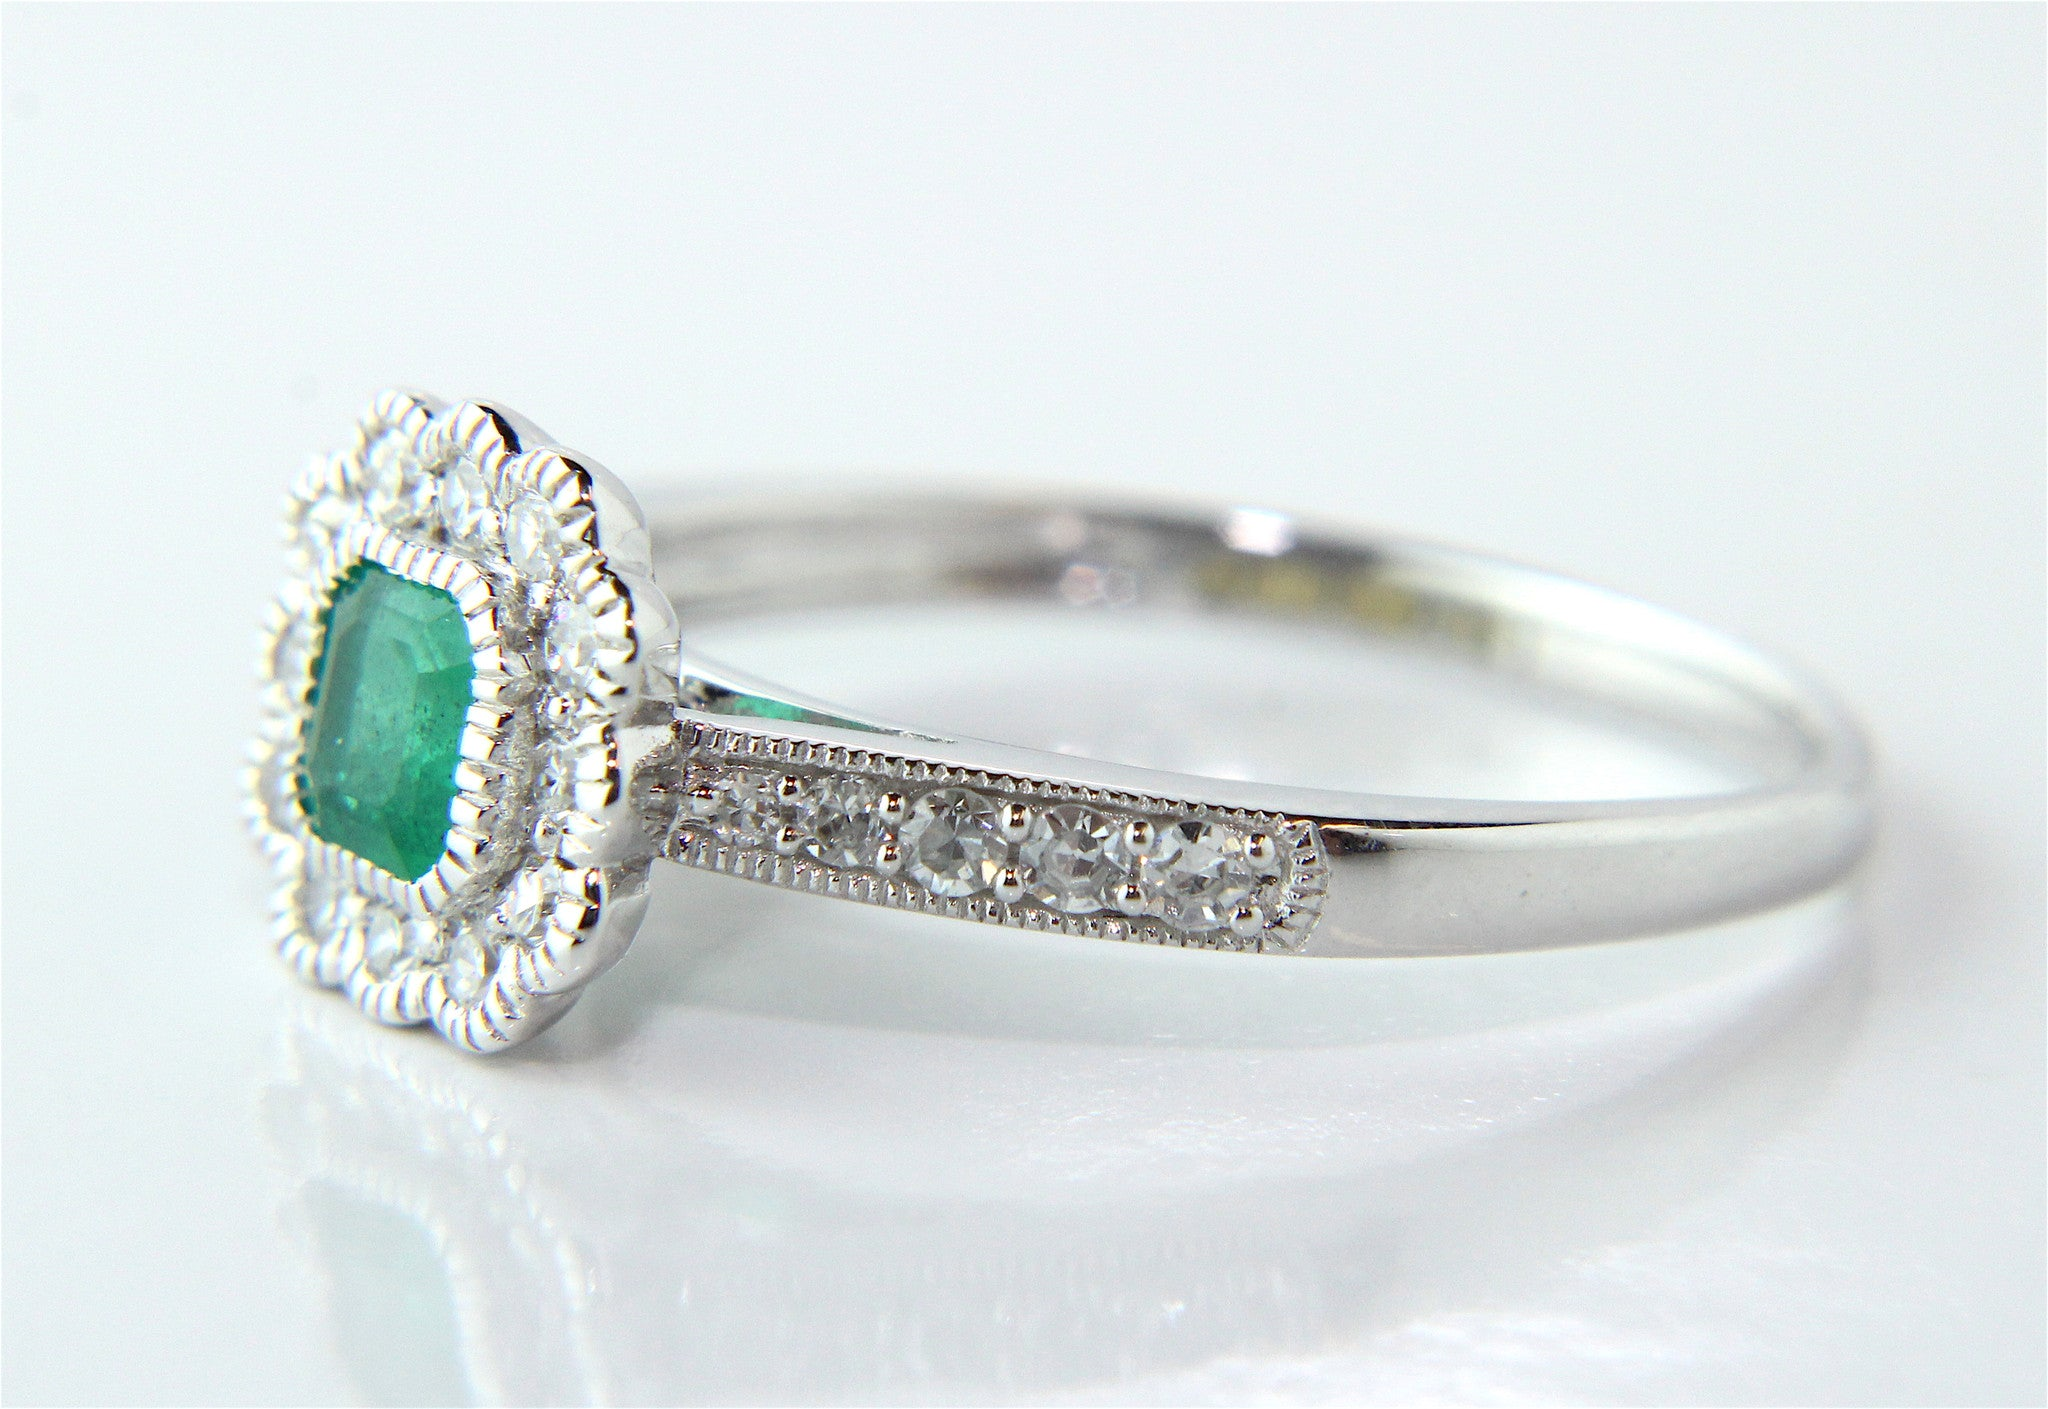 Dublin S Diamond Specialist Emerald Engagement Rings